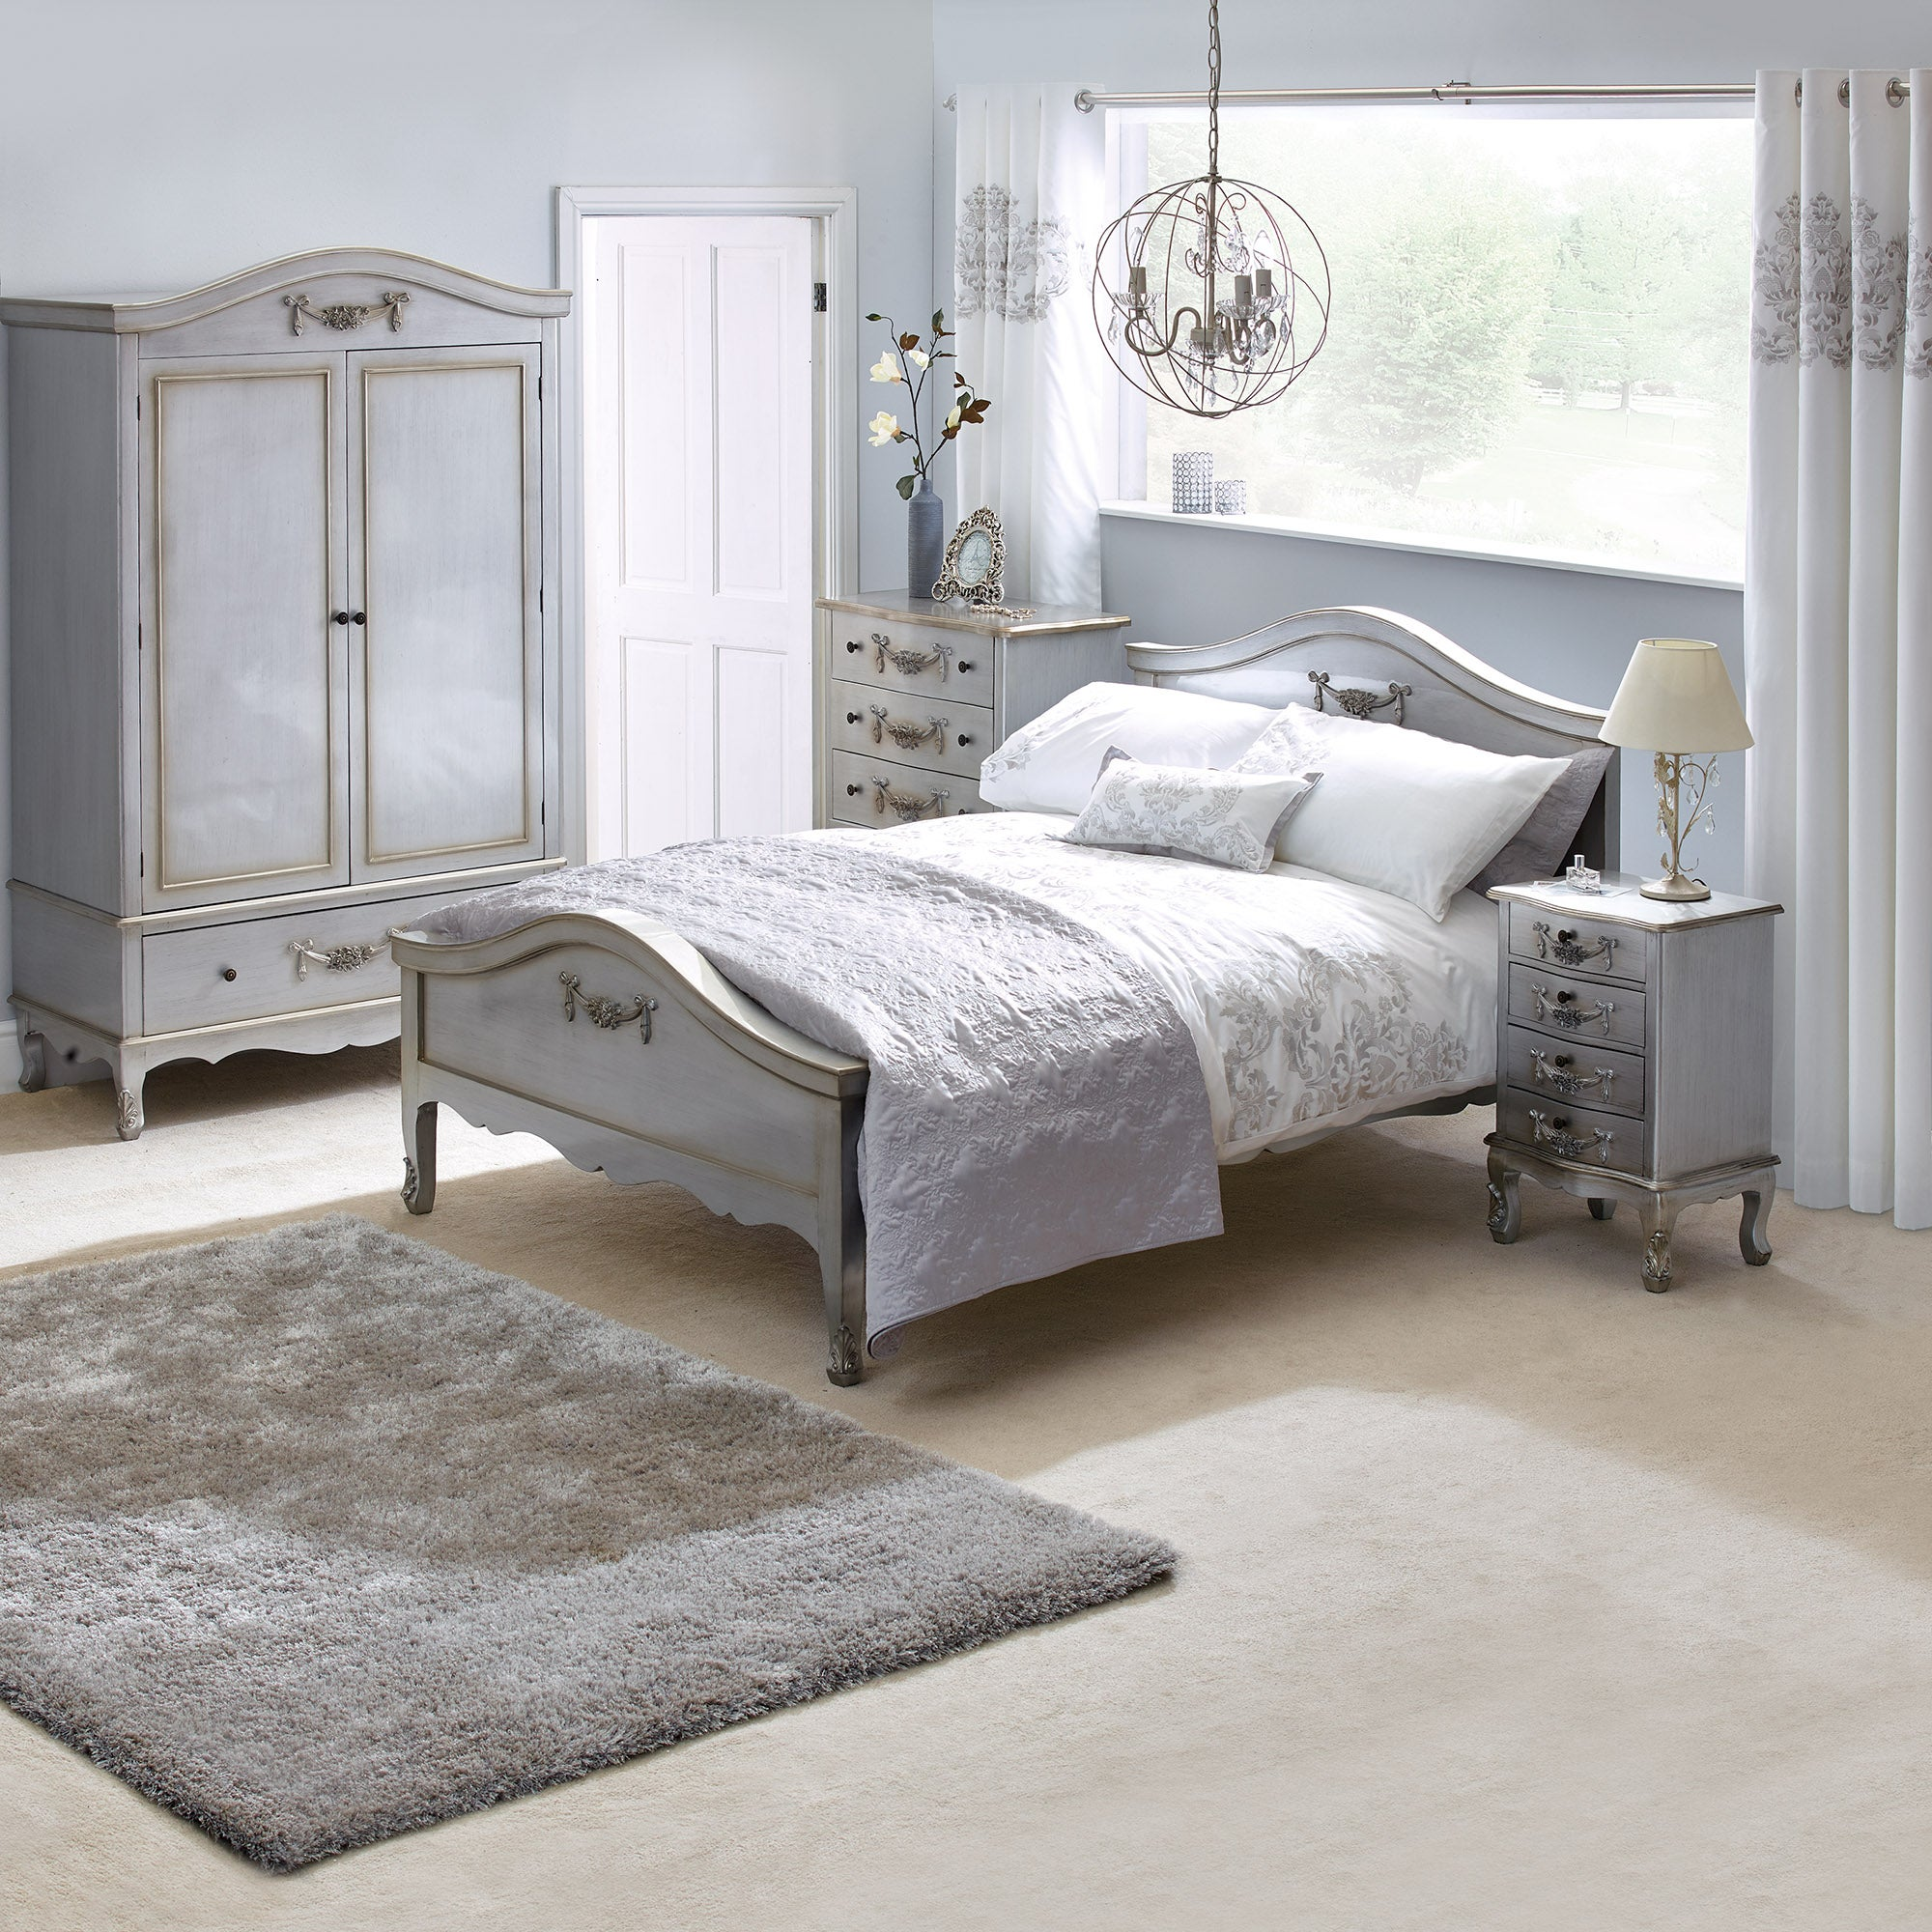 homeware furniture bedroom furniture bedroom furniture collections